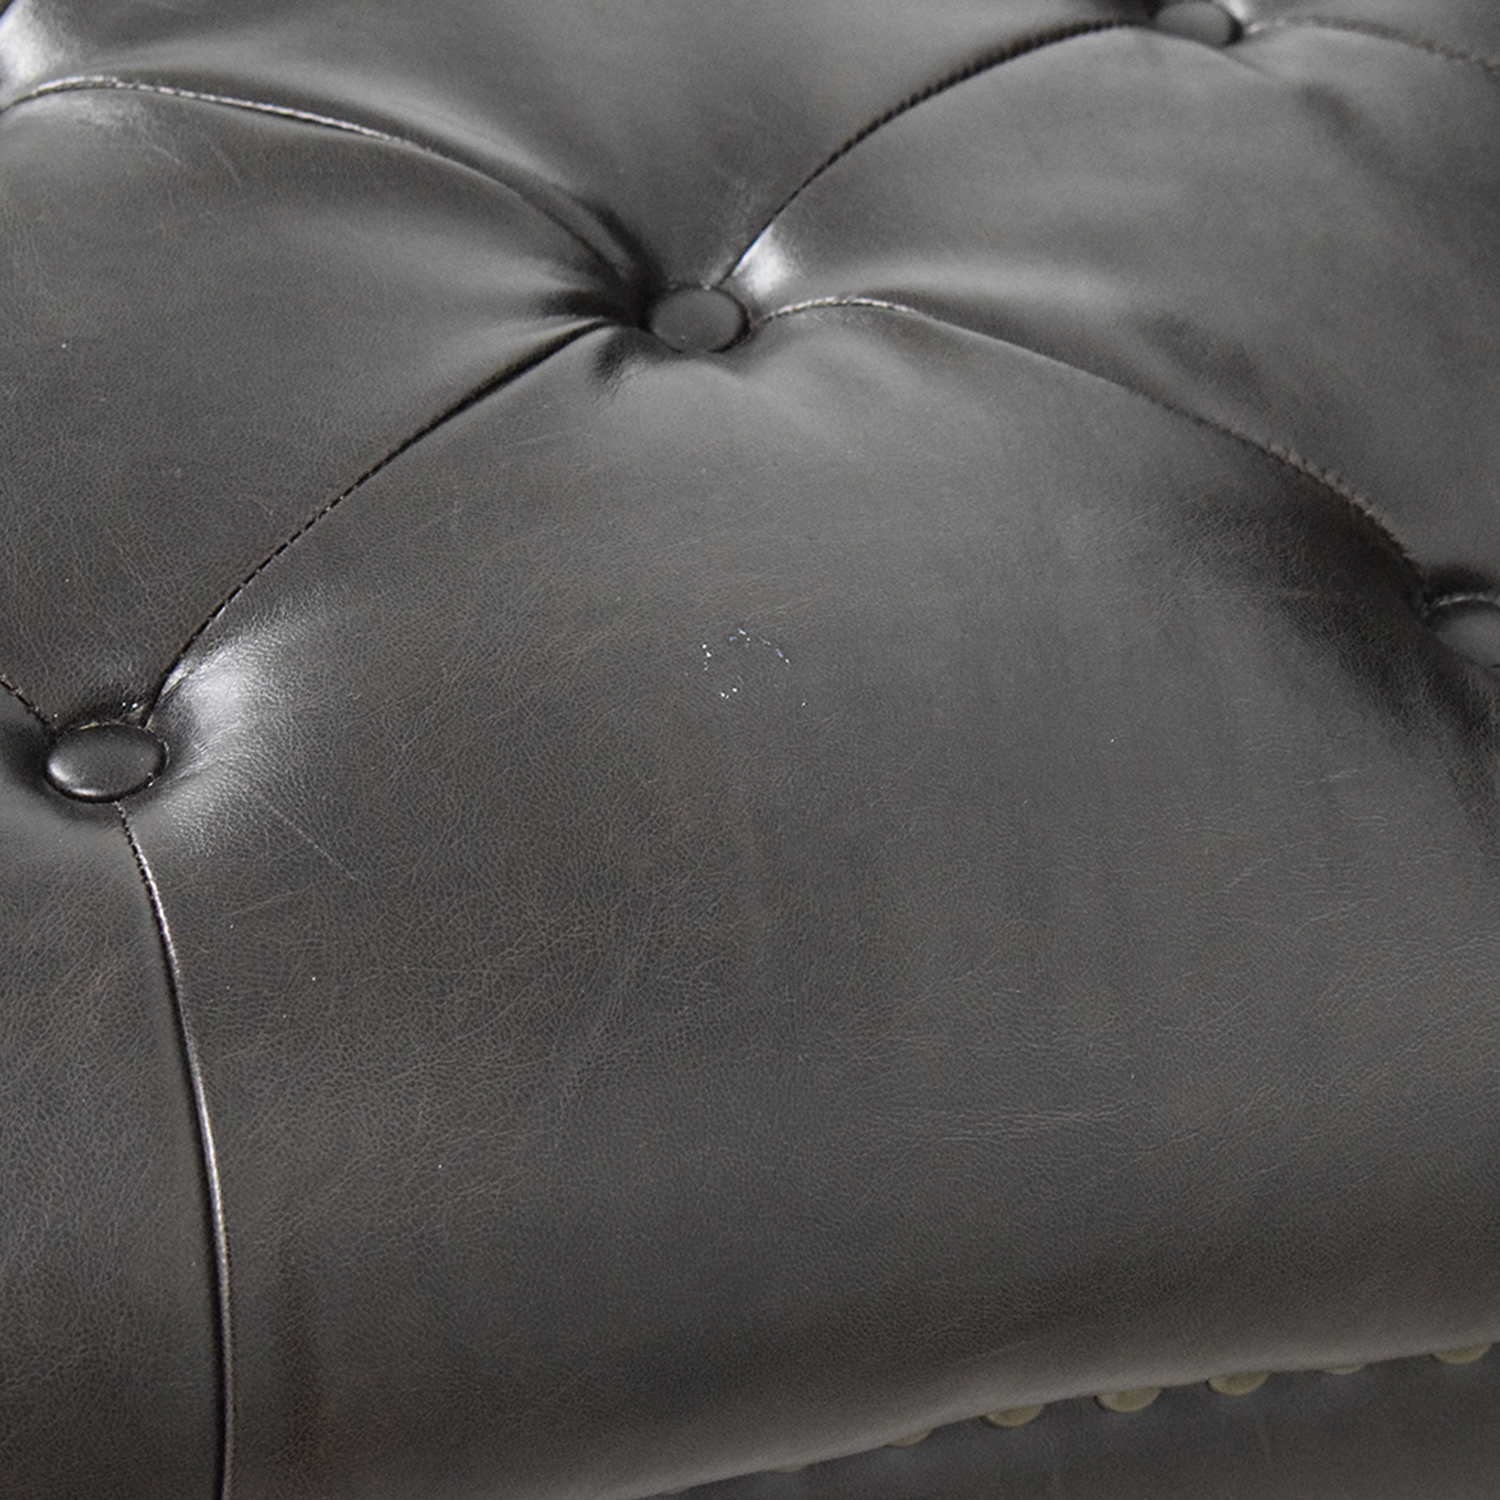 Raymour & Flanigan Raymour & Flanigan Sumter Brown Tufted Leather Chaise coupon